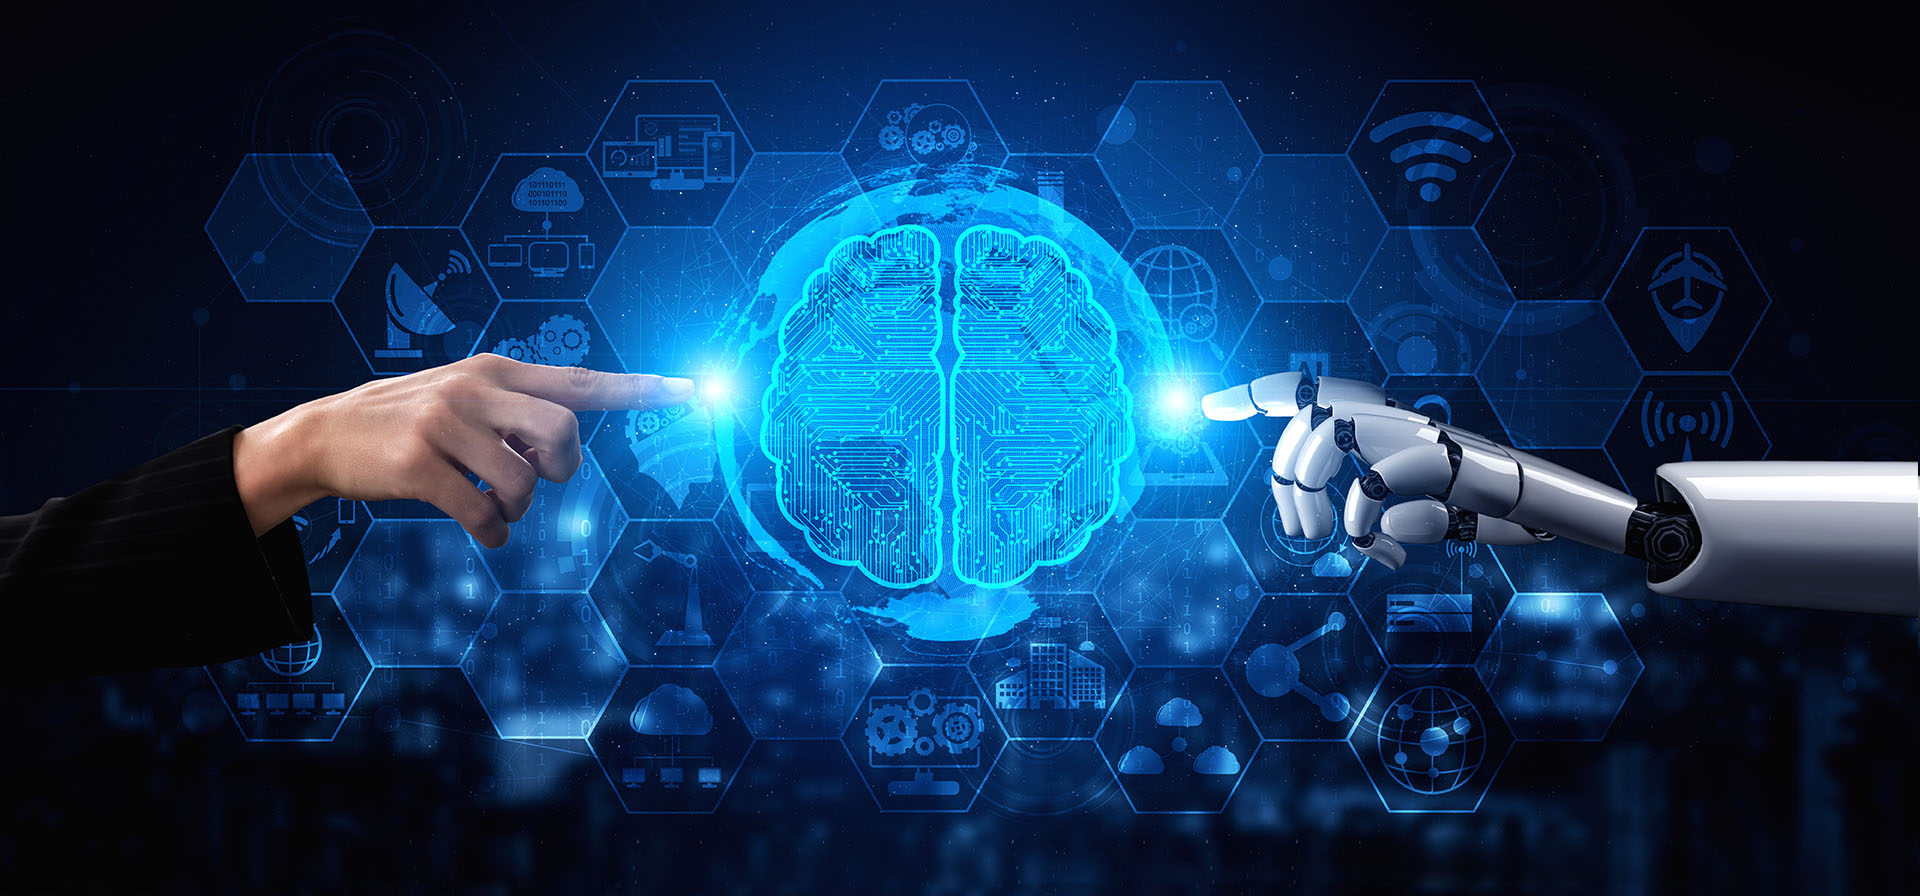 Leveraging deep learning advancements for augmenting human intelligence, broadening capabilities and enriching Customer Experiences